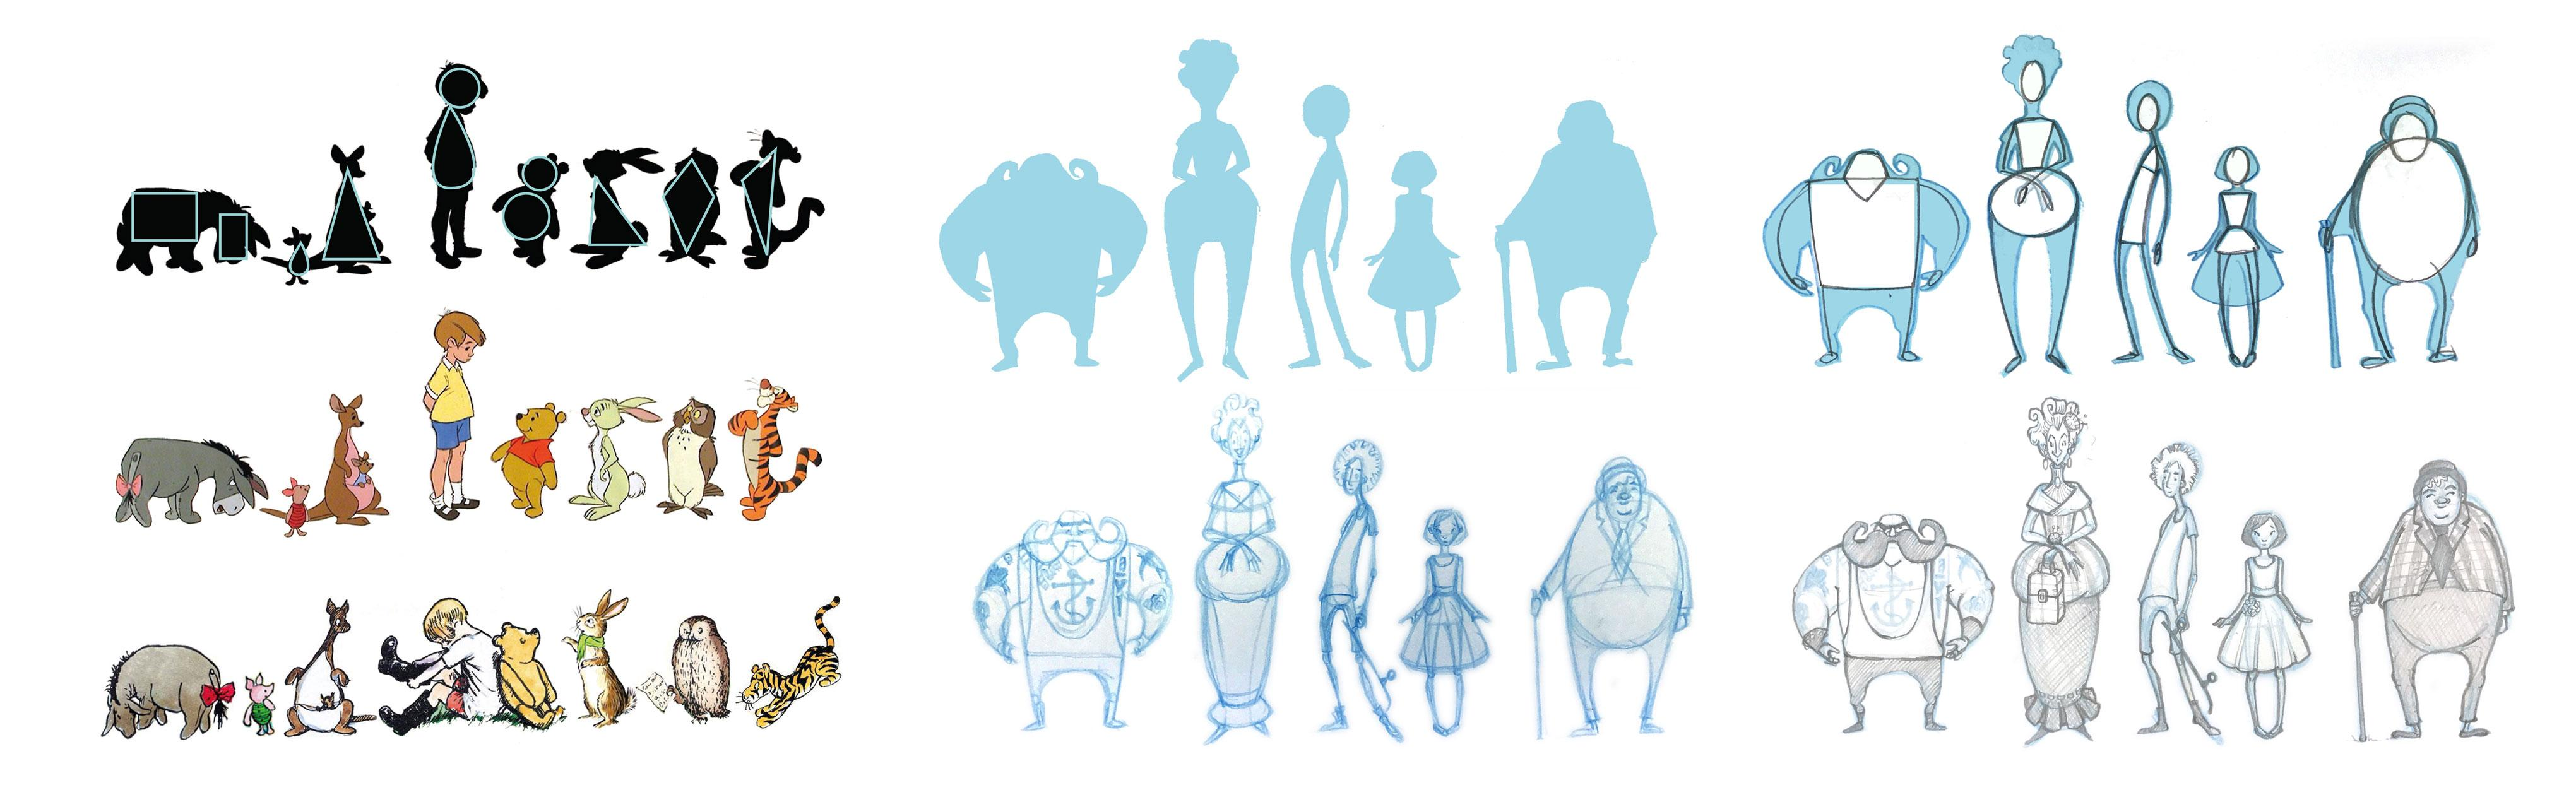 Simple Character Design Illustrator : Draw a circus of characters exploring body shape and body